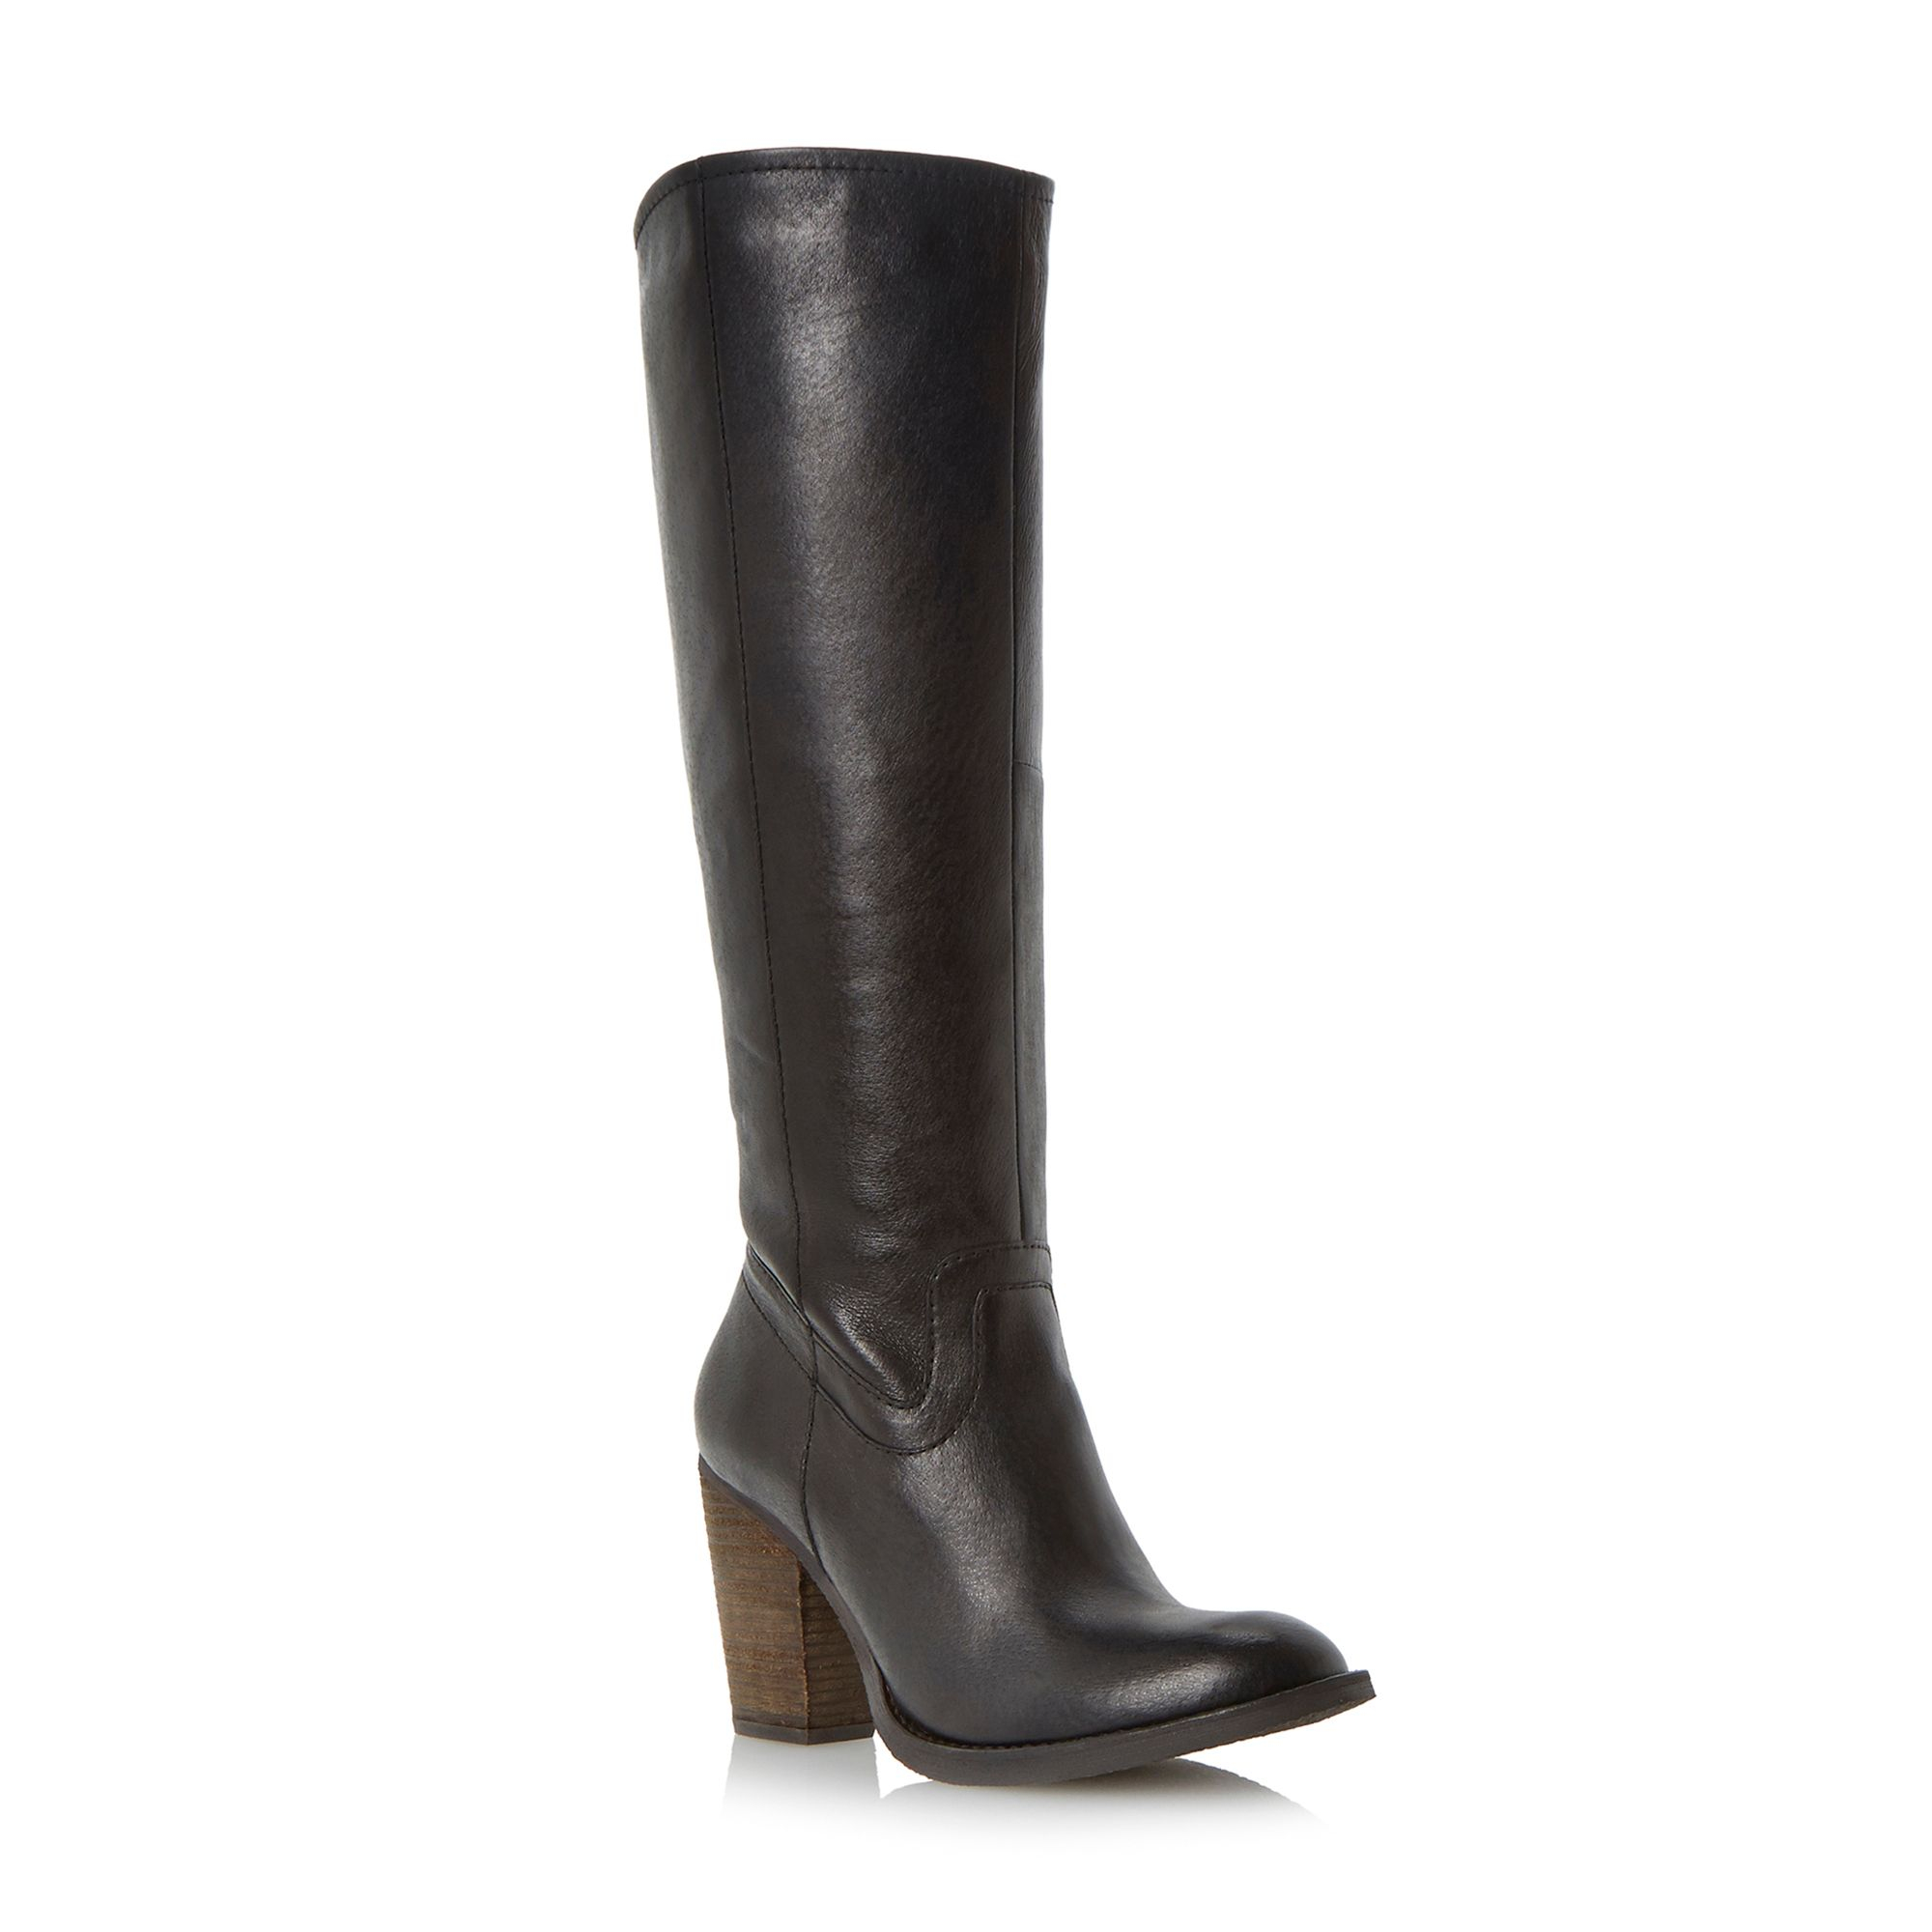 steve madden knee high leather boot in black lyst